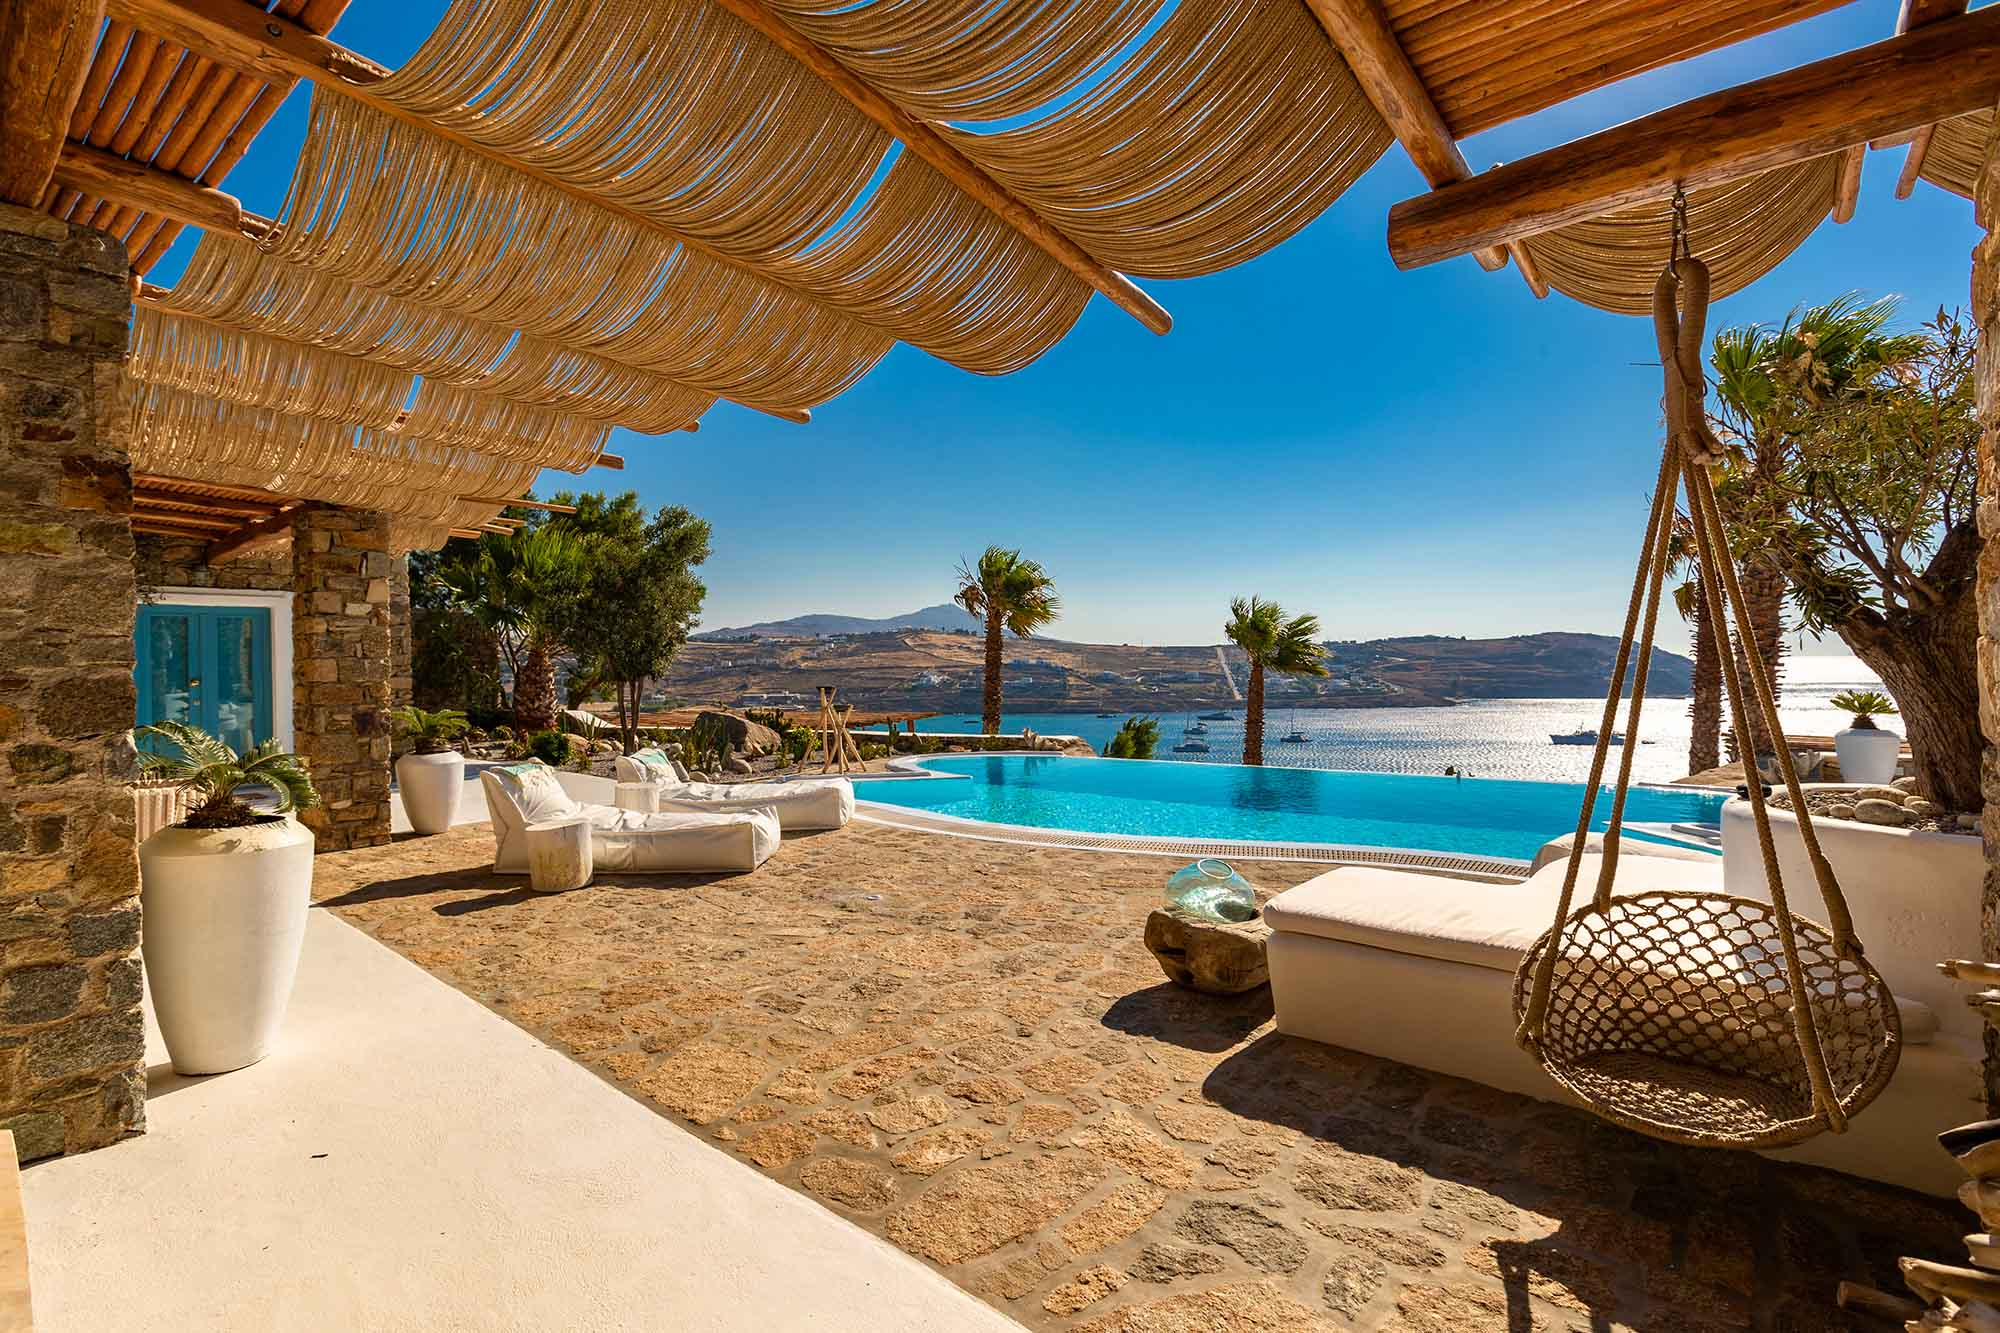 RENT A LUXURIOUS VILLA BY THE SEA IN MYKONOS - VILLA KARKOS - mountain and sea view